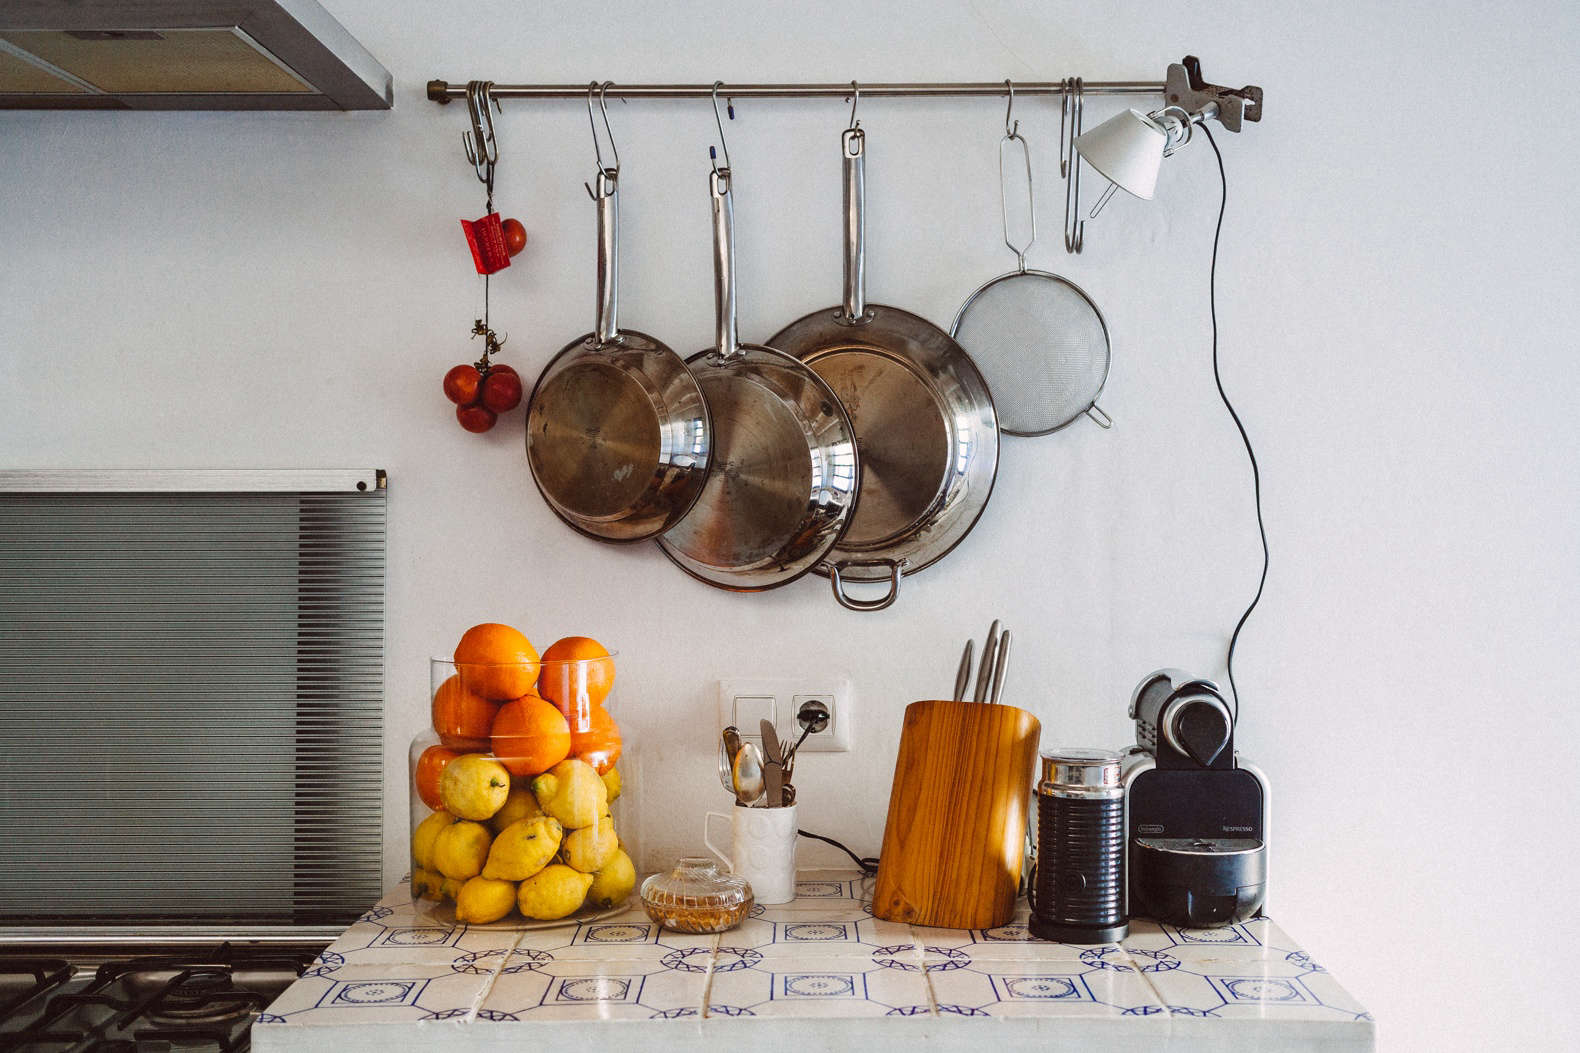 Ikea hanging rail at Townhouse A, a kitchen design by Quintana Partners